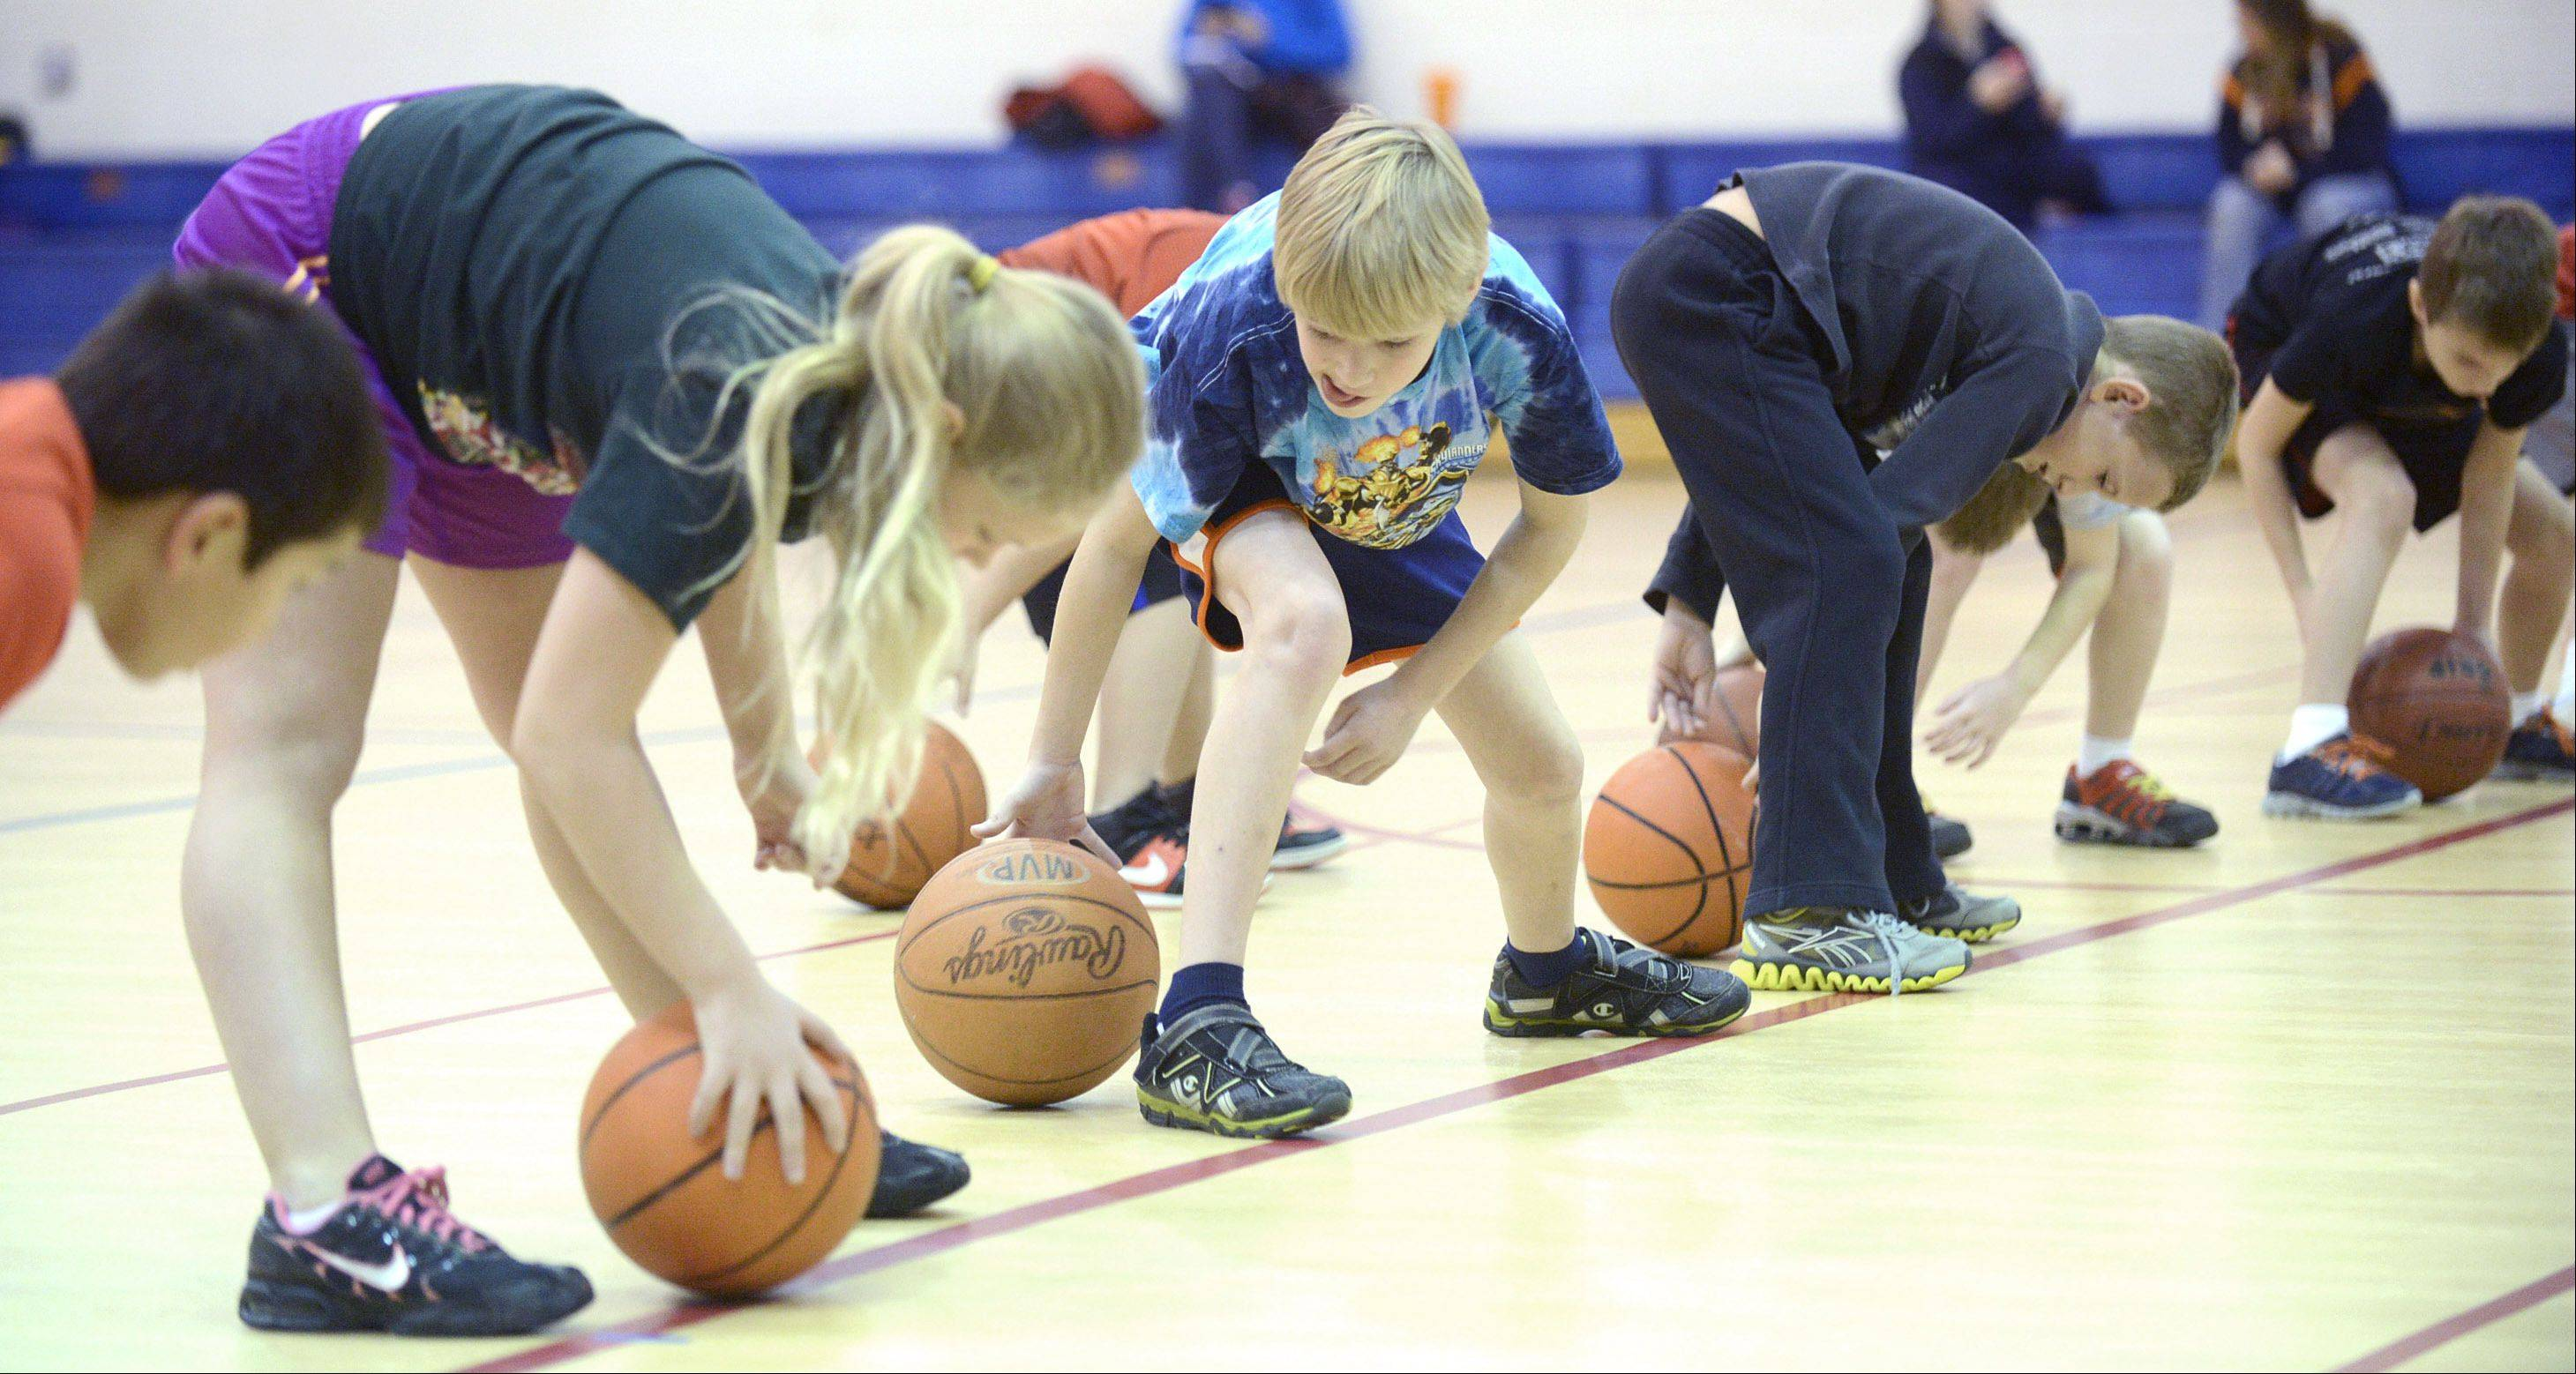 Madison Kozlowski, 10, of Aurora and Logan Hubble, 8, of Sugar Grove practice dribbling through and around their legs during the start of a three-day basketball camp in Sugar Grove on Thursday, December 26. The park district camp, run by All Stars Sports Instruction, included basic mechanics with concentrations on shooting, ball handling and passing.